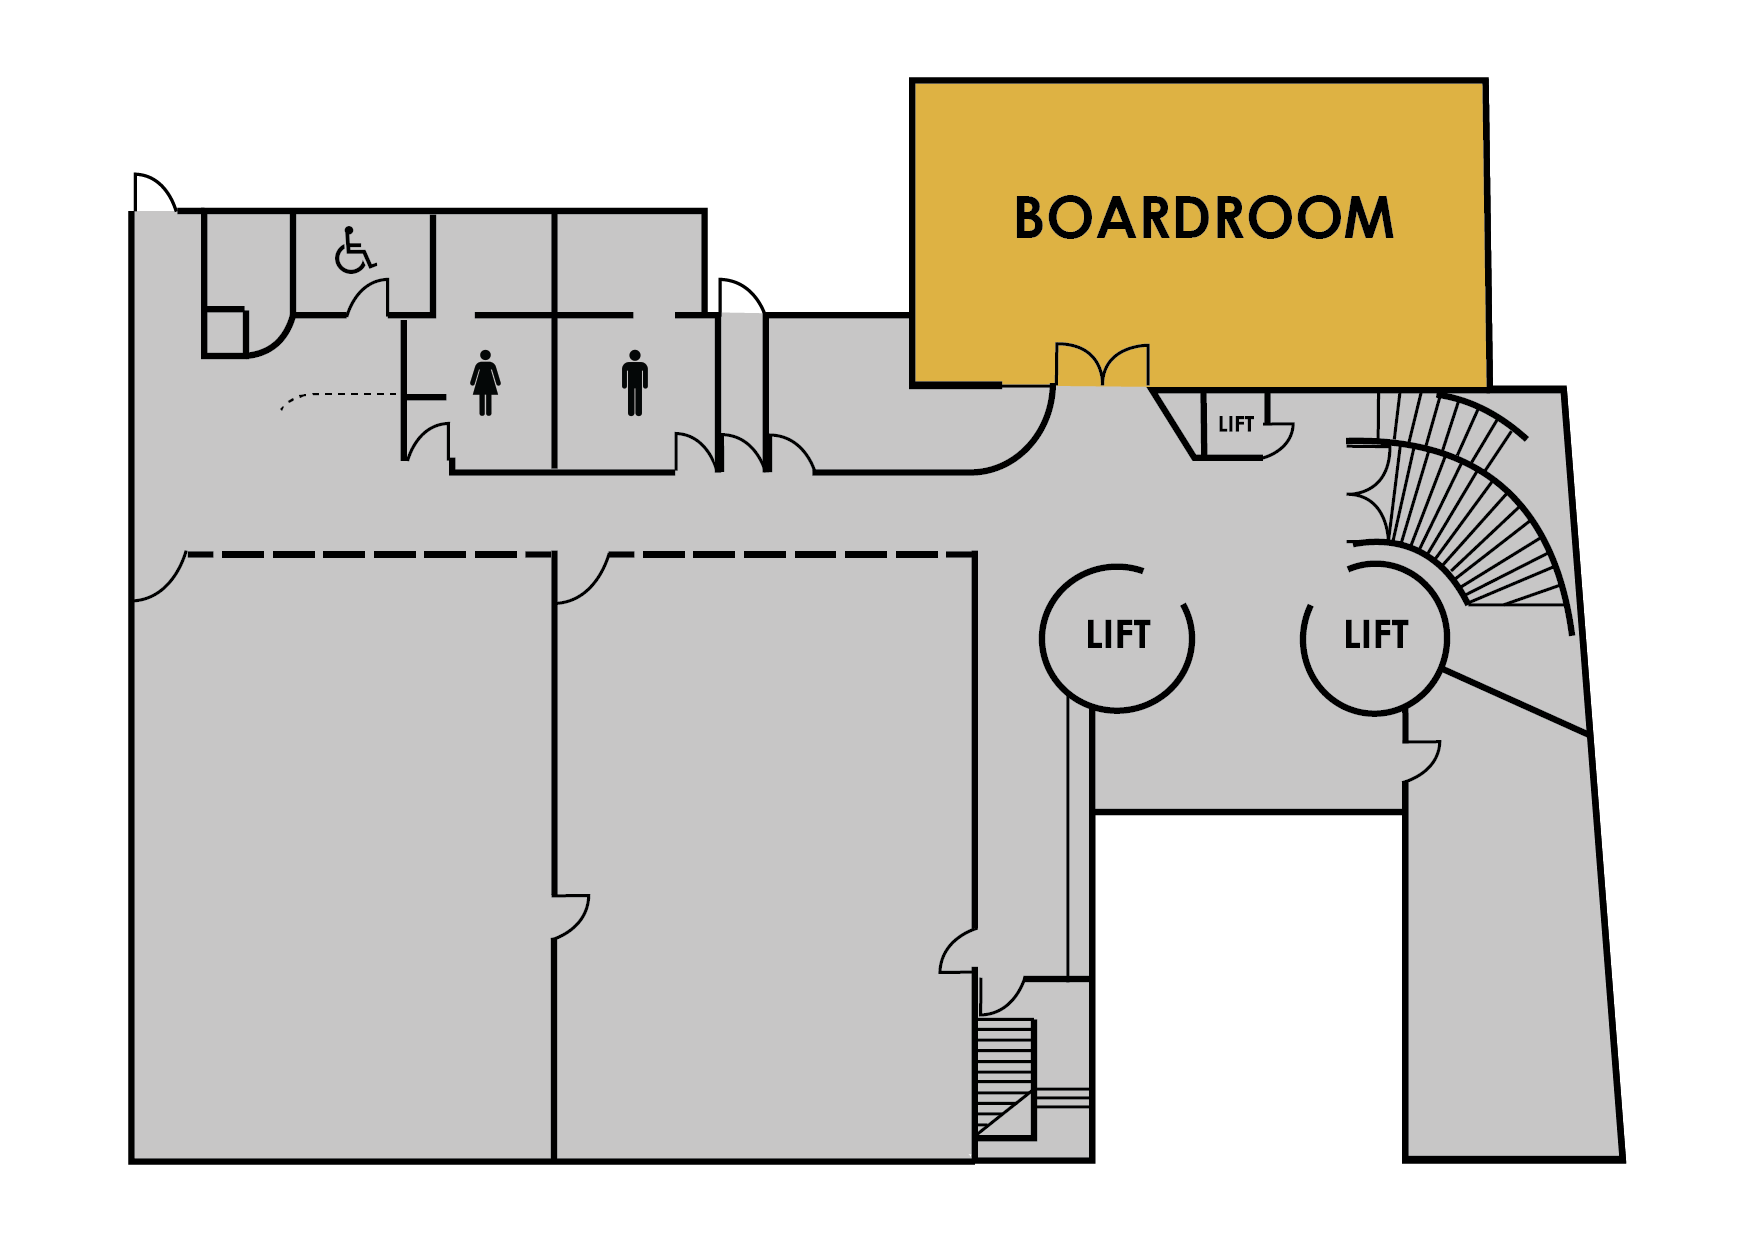 Boardroom map